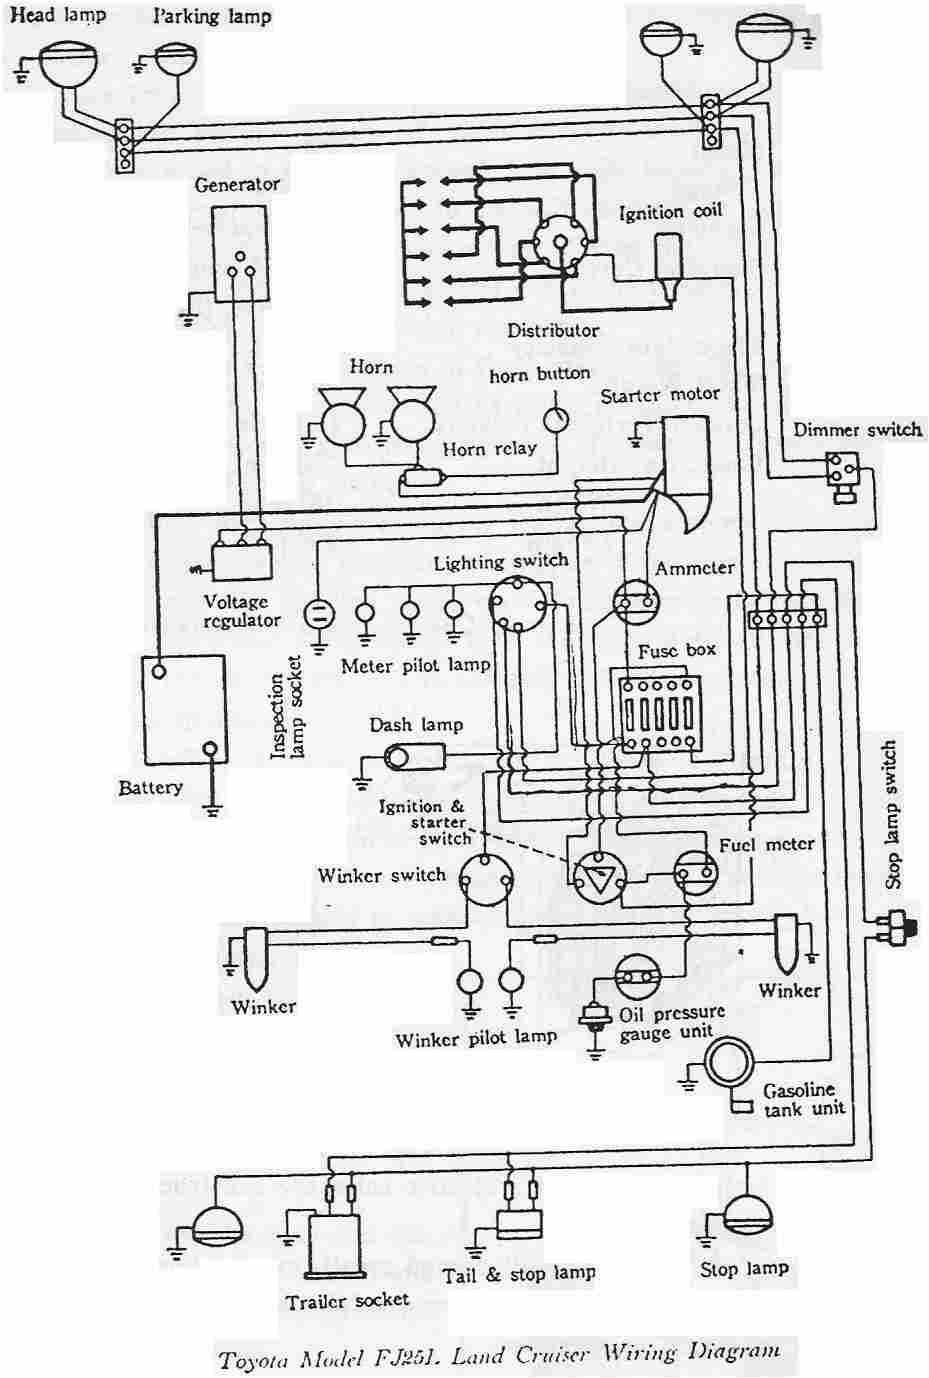 Toyota Wiring Diagram Control Wiring Diagram \u2022 2001 Toyota Corolla  Window Wiring Diagram Toyota Electrical Wiring Diagrams